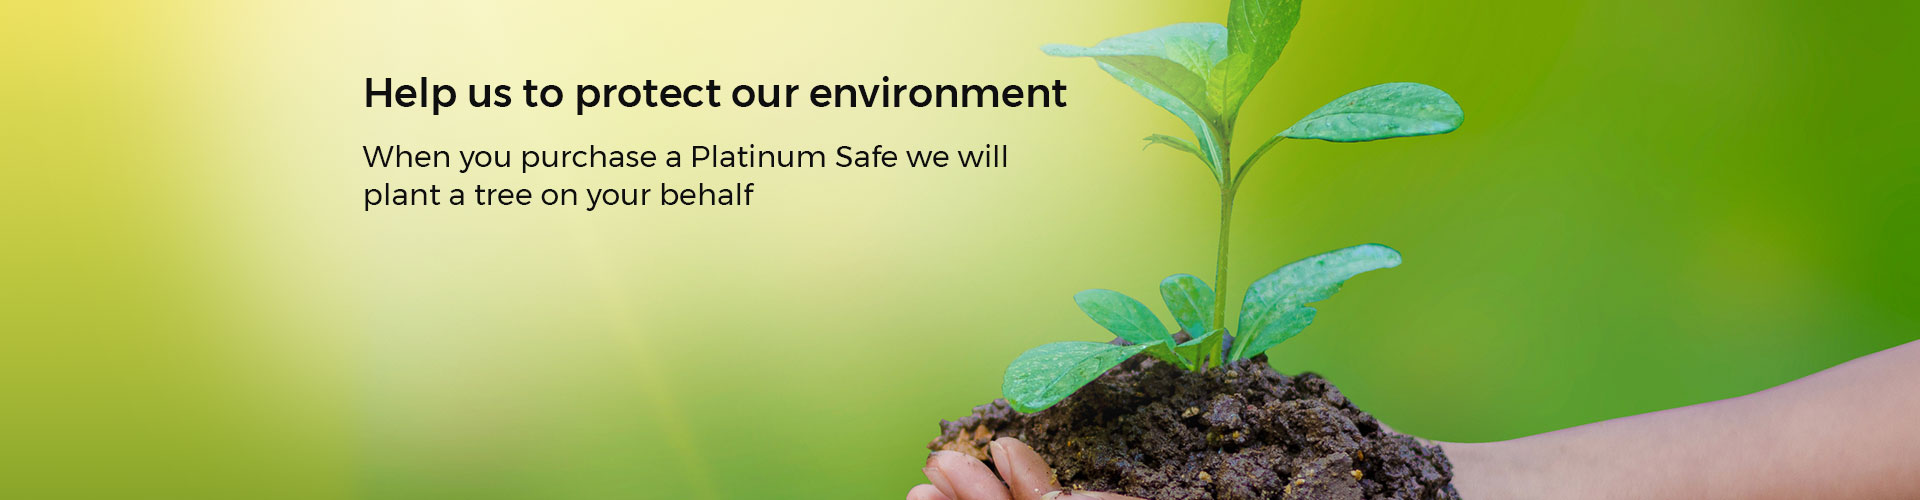 Help us protect the environment. When you purchase a Platinum Safe we will plant a tree on your behalf